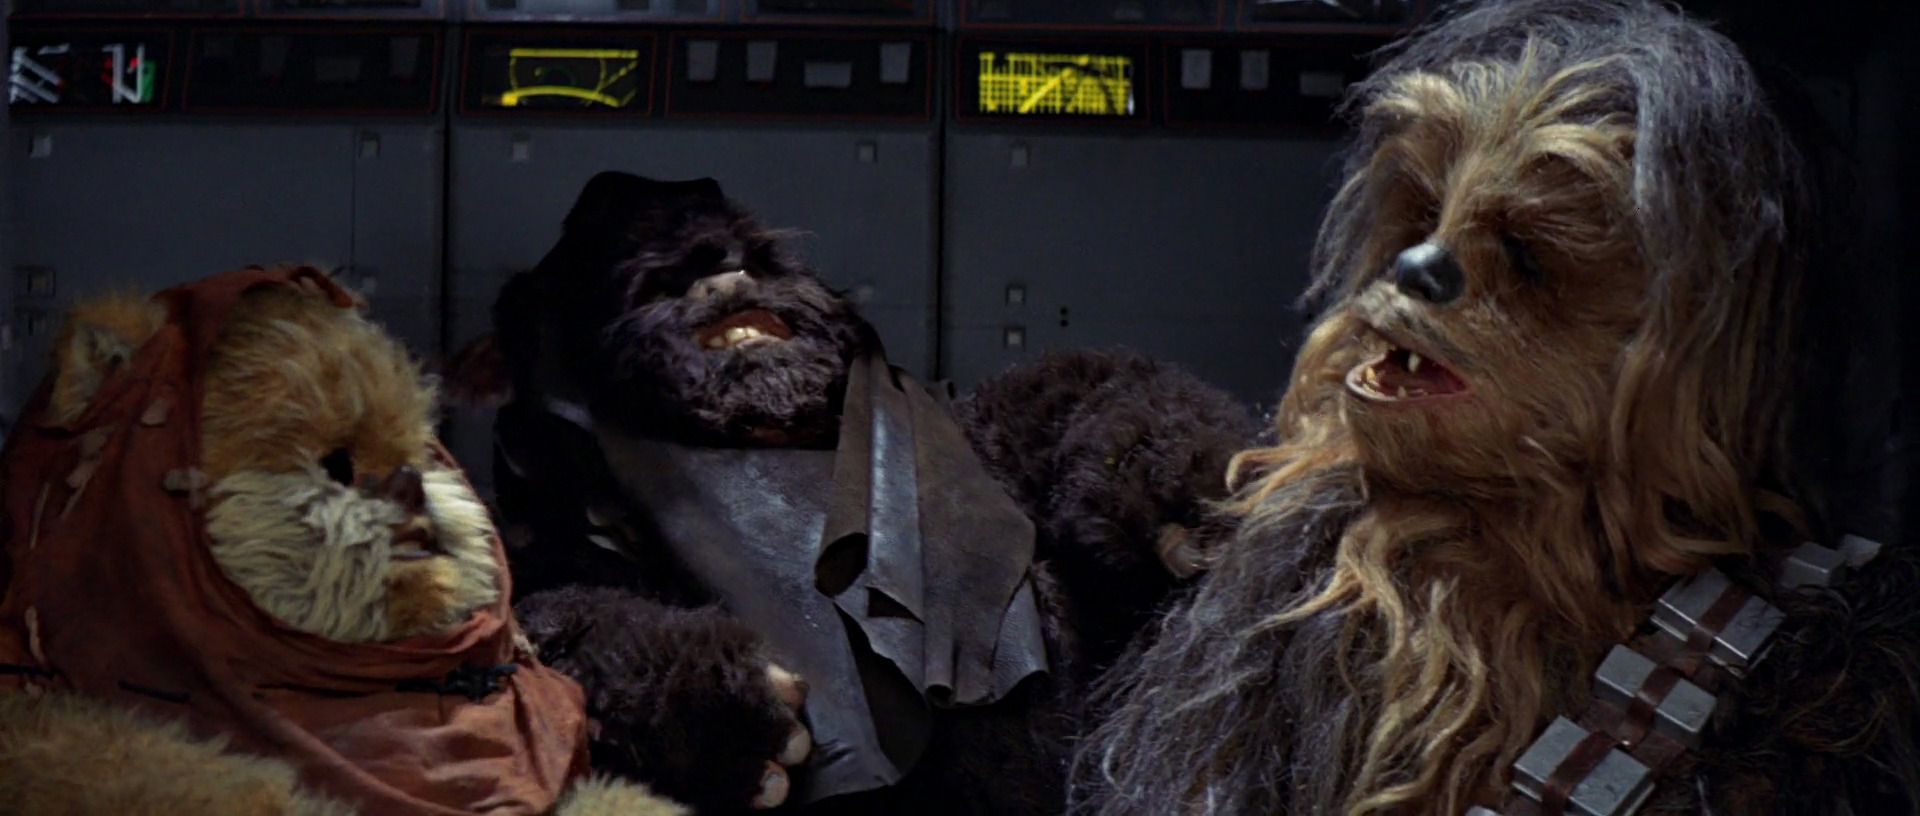 Ewoks and Wookie